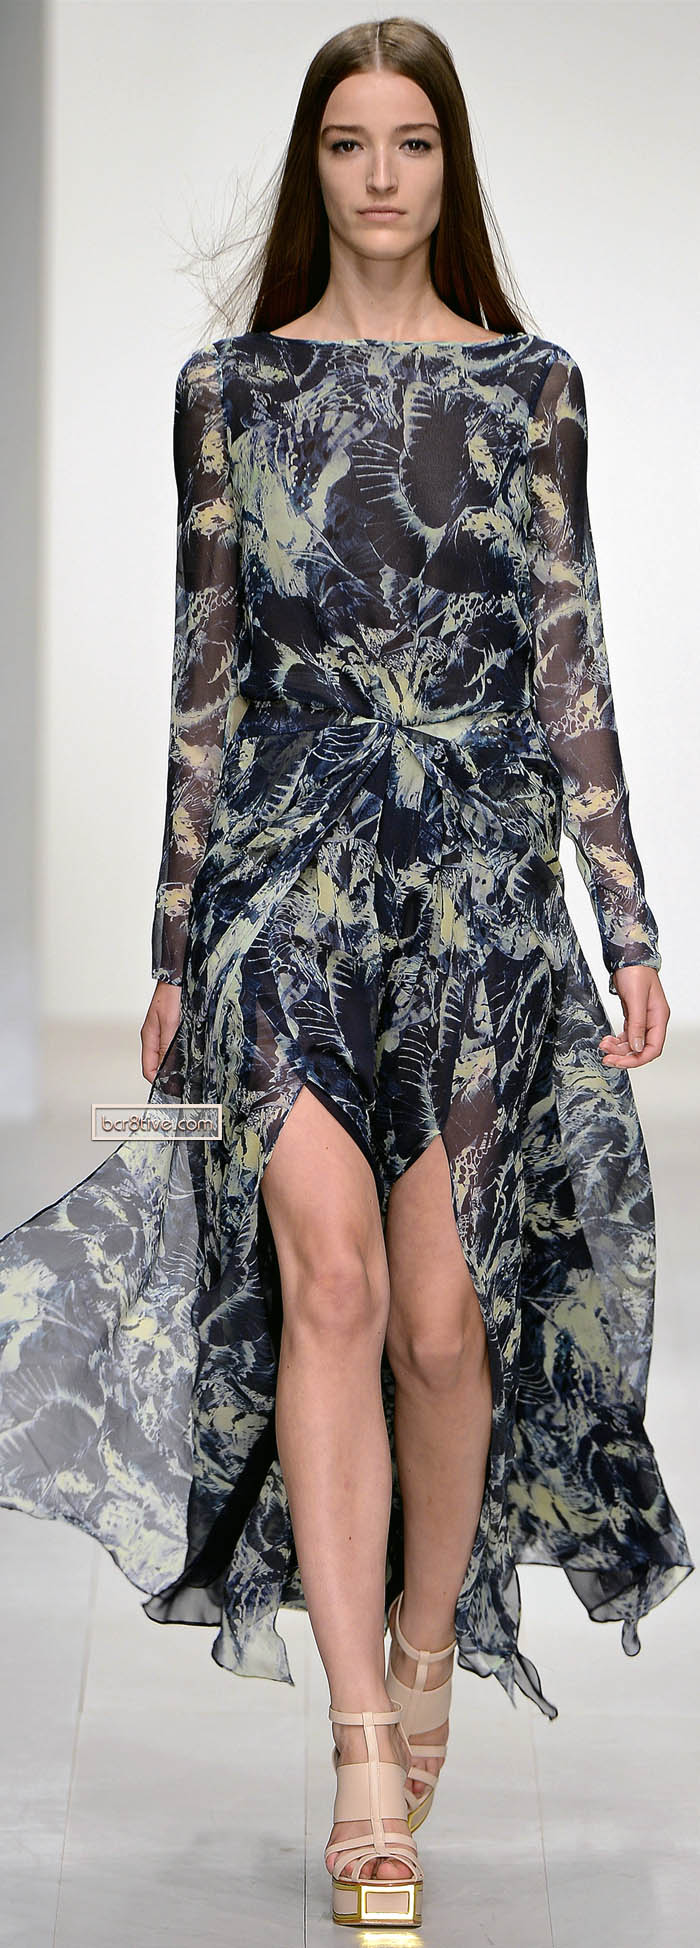 Felder Felder Spring Summer 2013 Ready to Wear